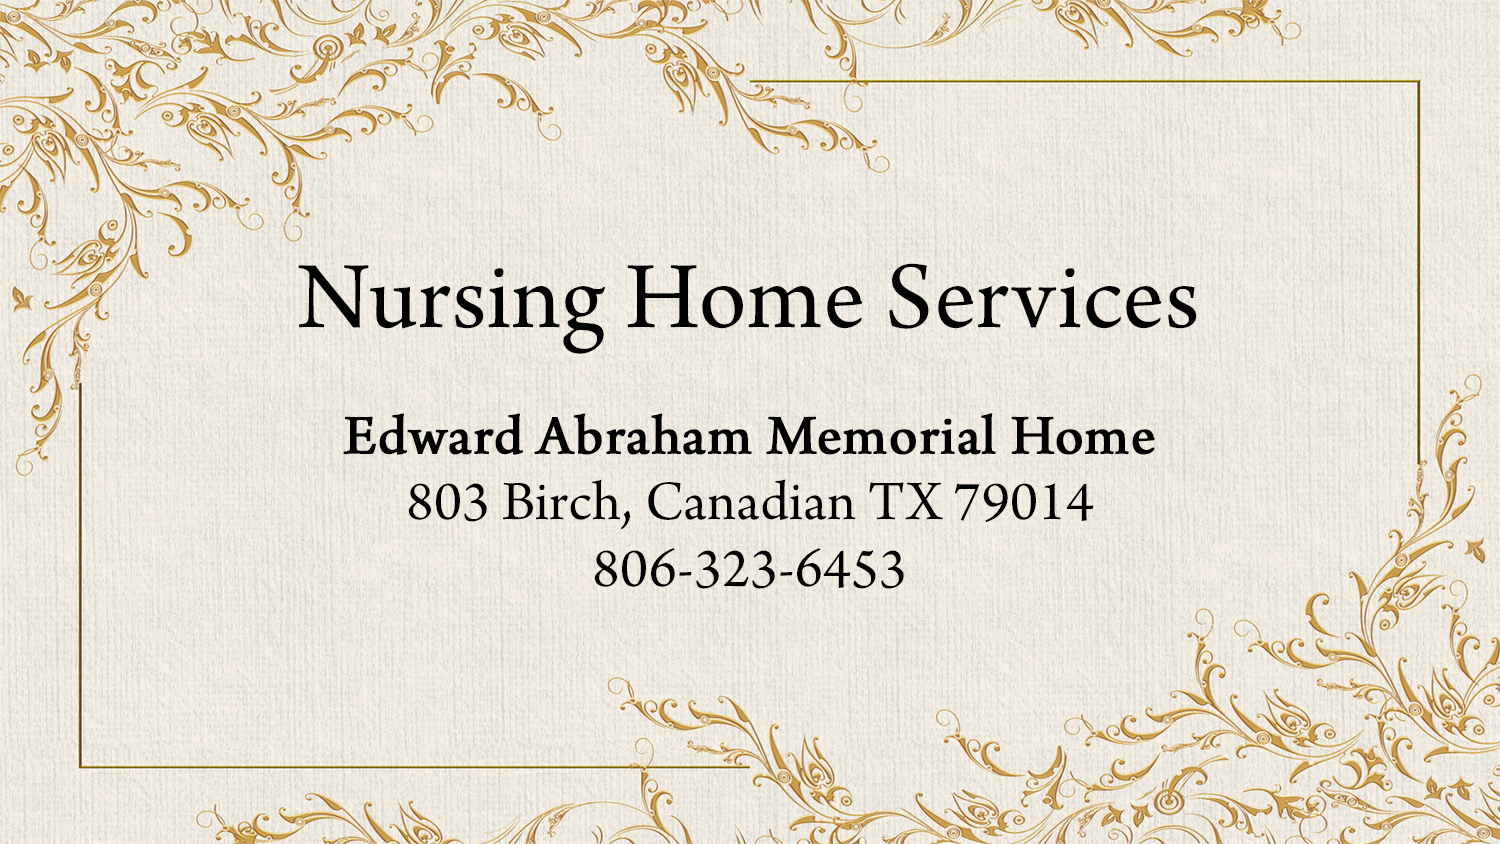 listings nursing home services